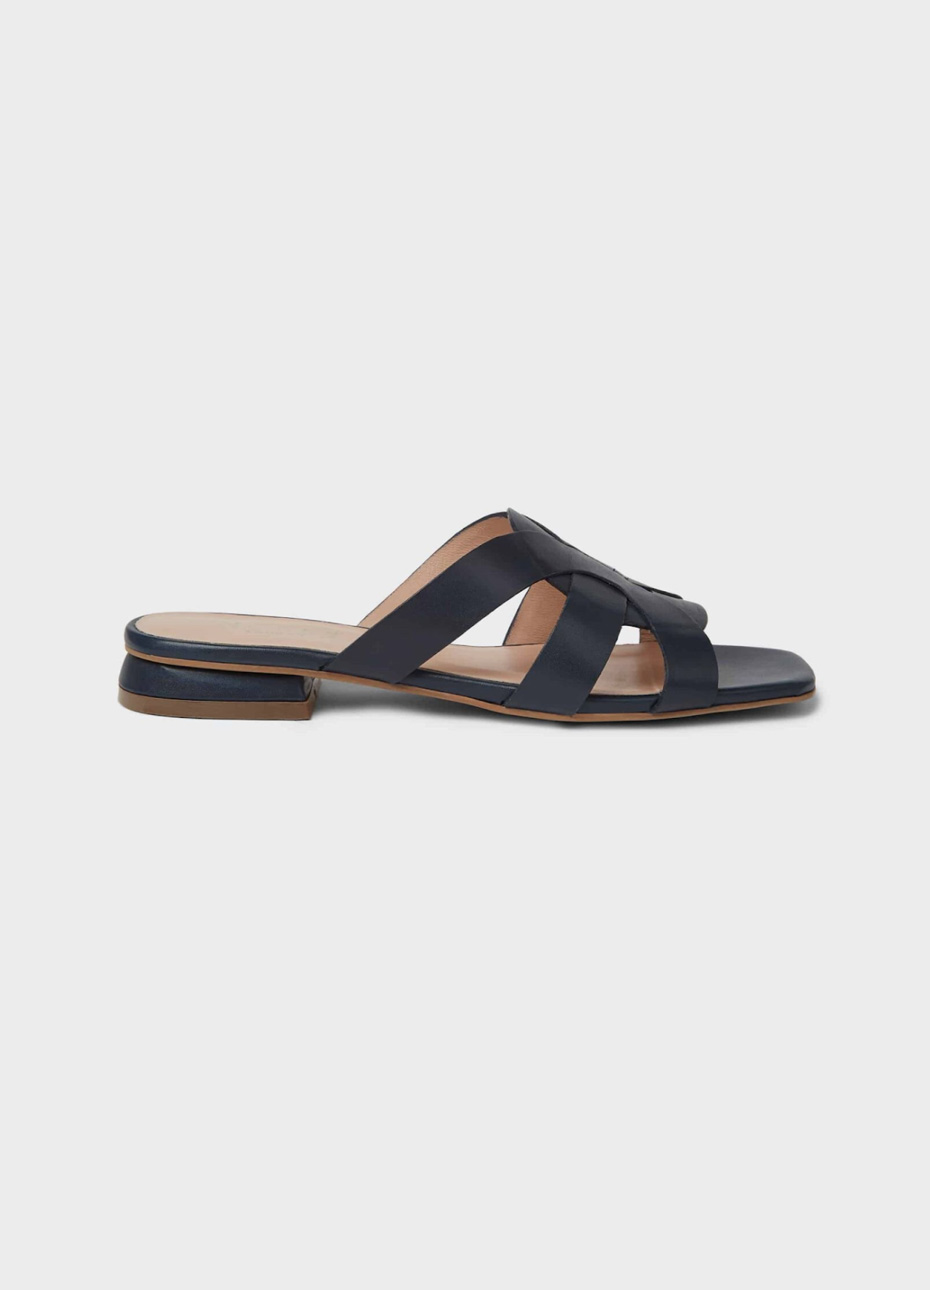 Hobbs flat leather sandal with an open back in black.